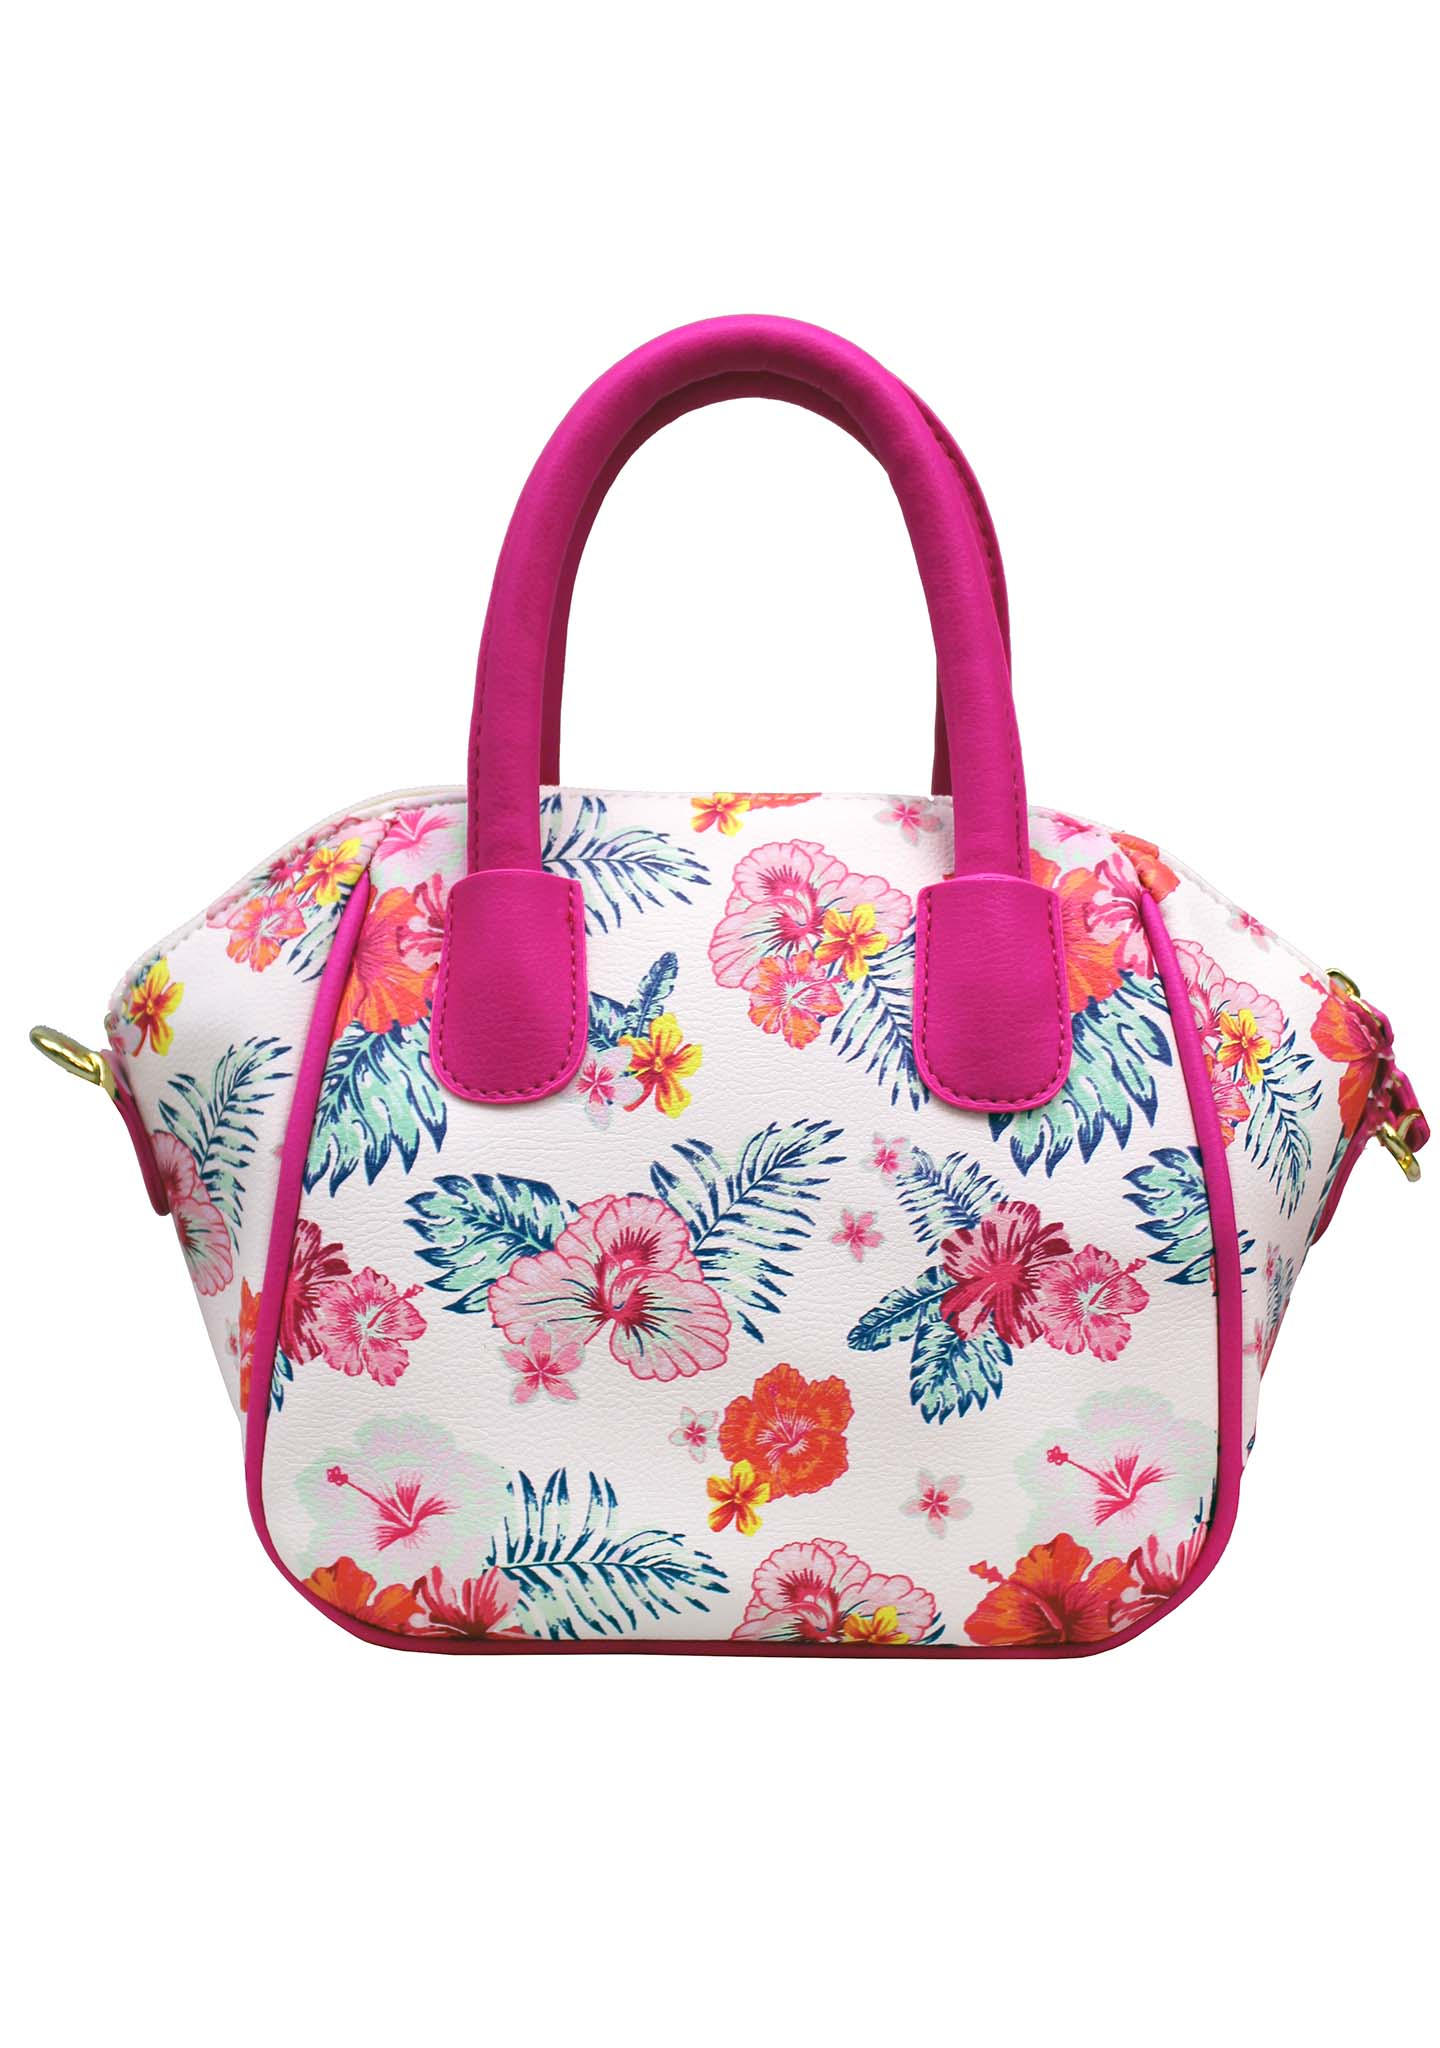 LBQuinn Floral Mini Satchel Bag